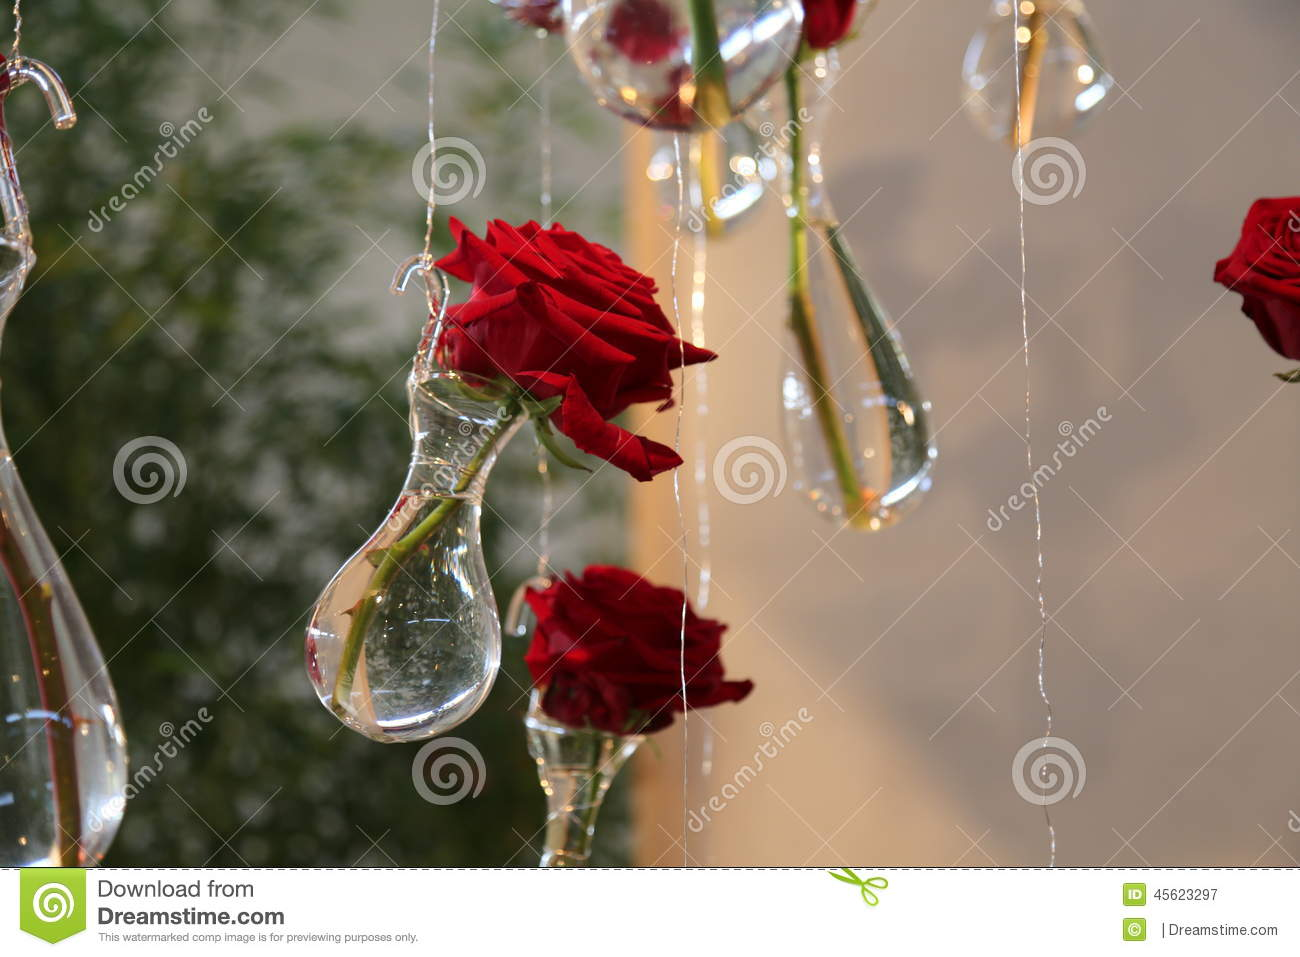 ... glass beauty fragility dream love soaring red crystal suspended